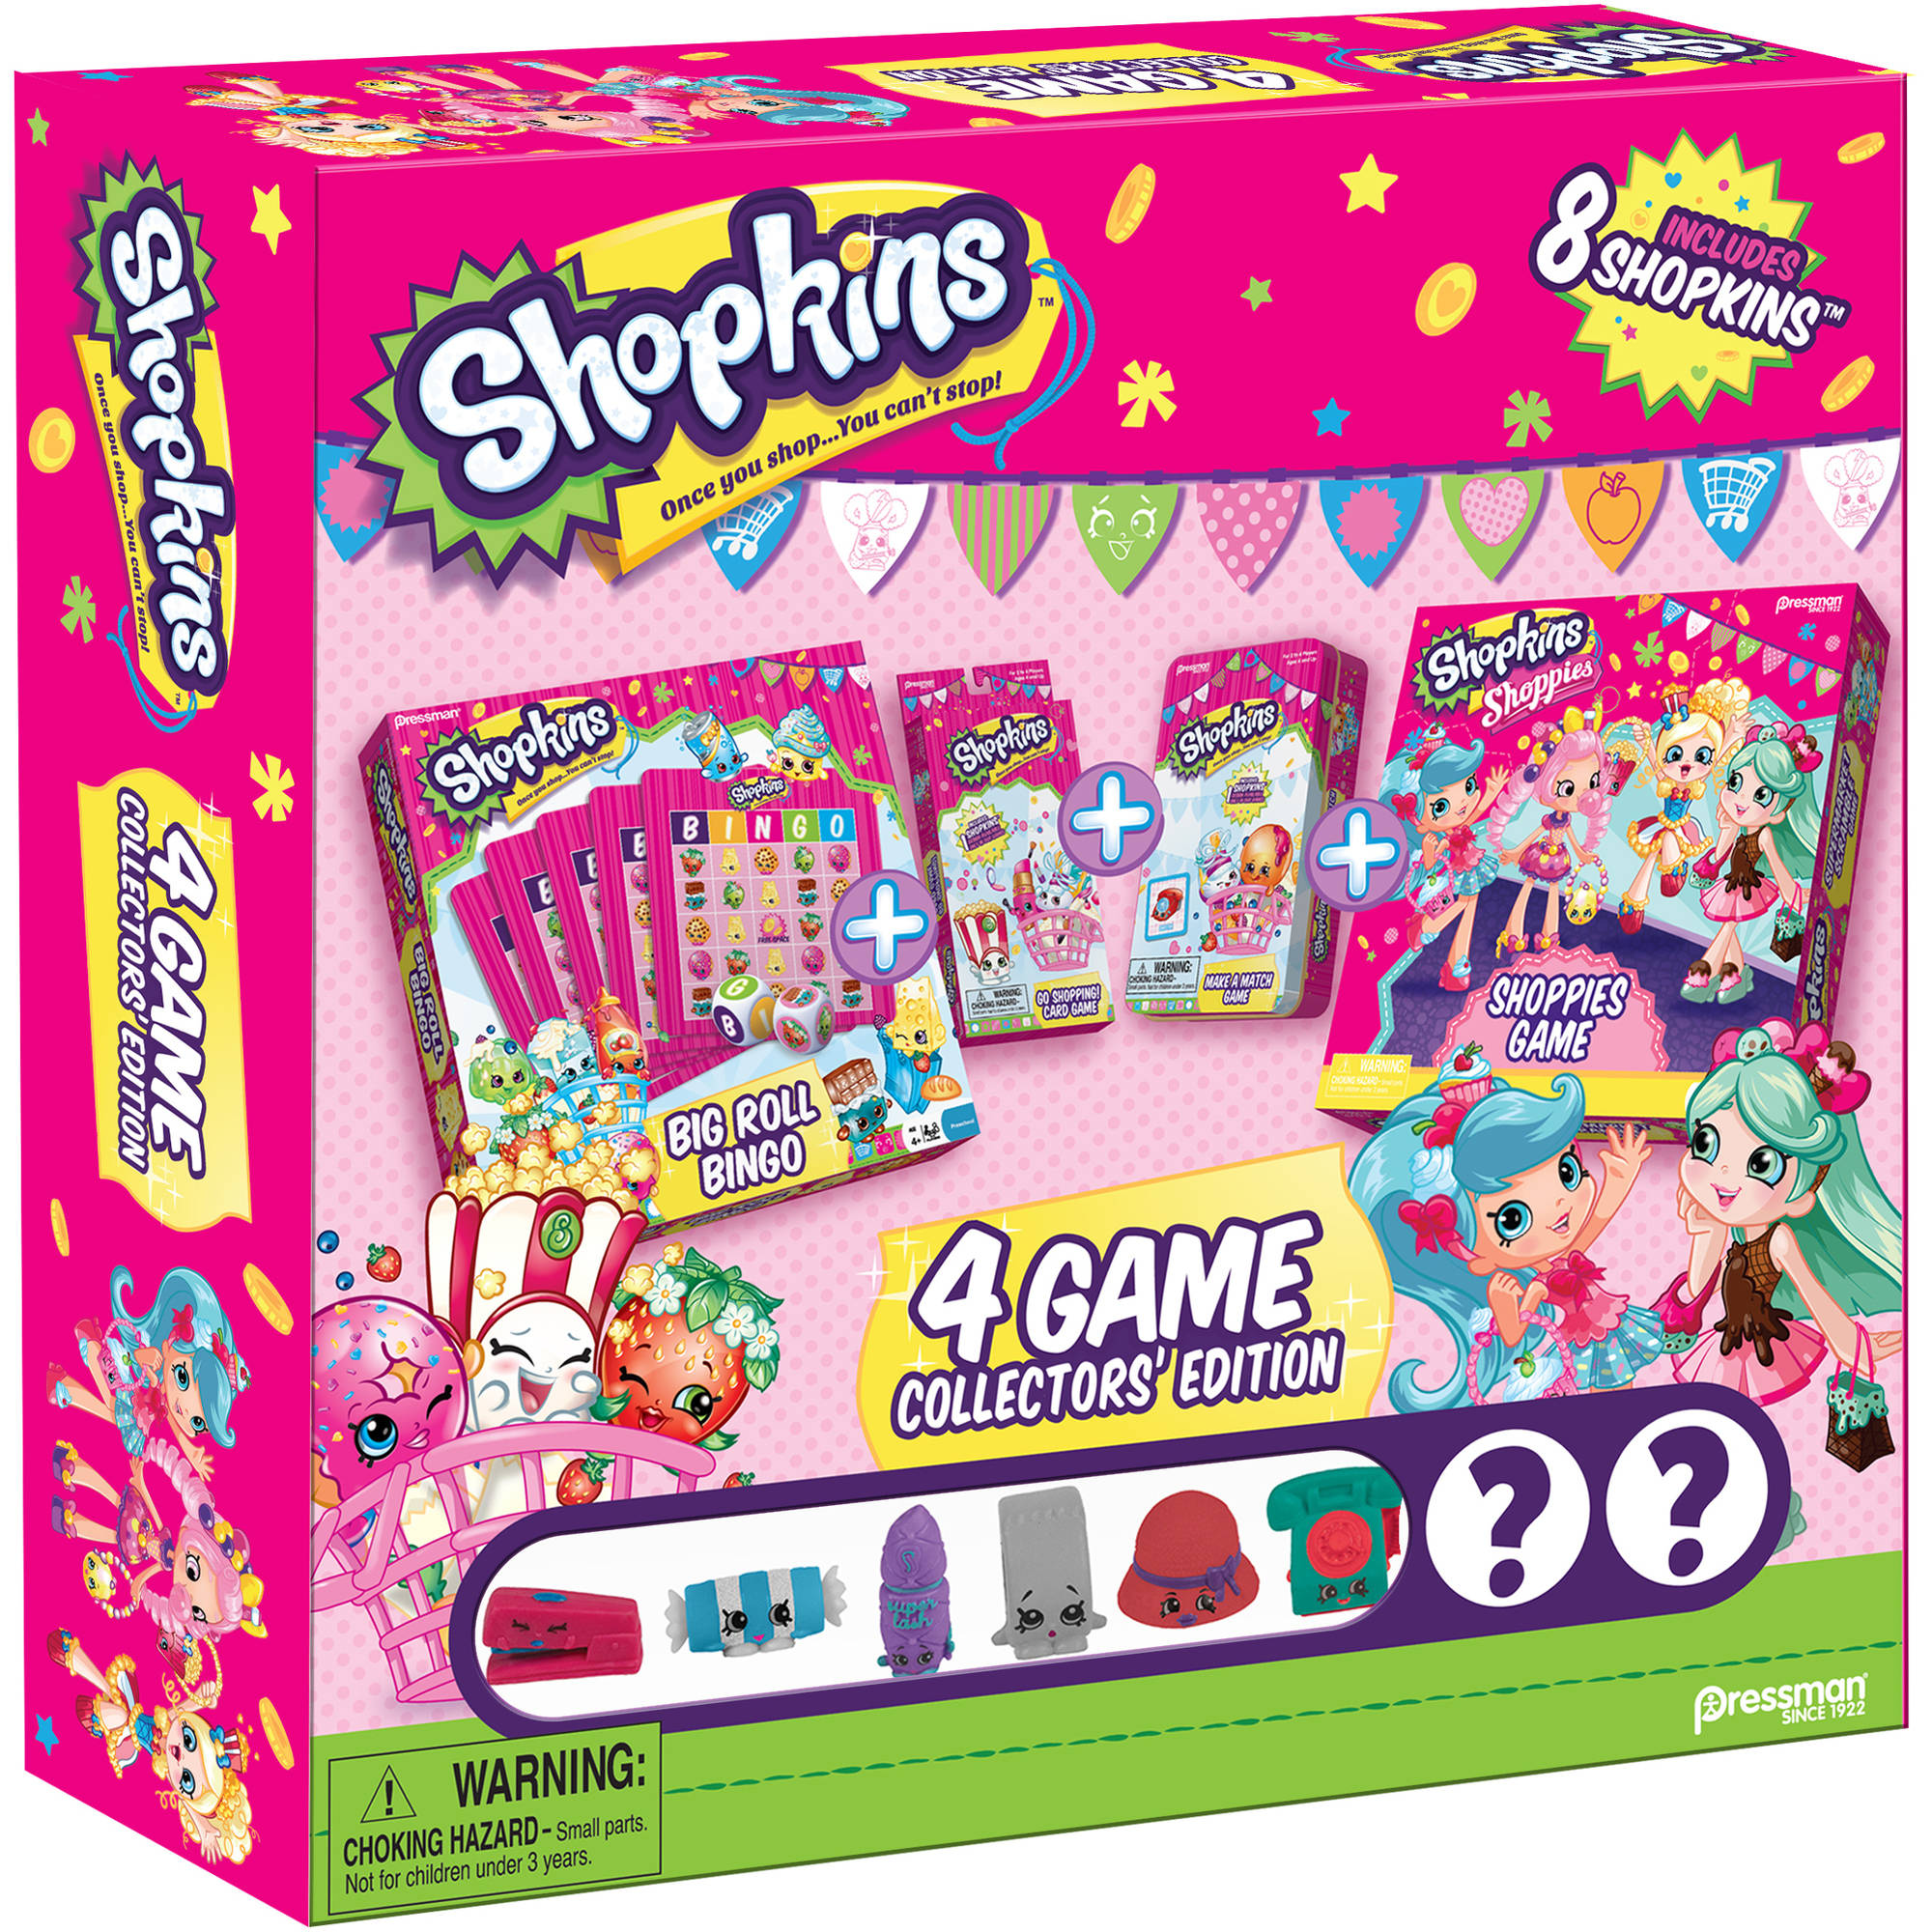 Shopkins Games Collectors' Edition 4089-04